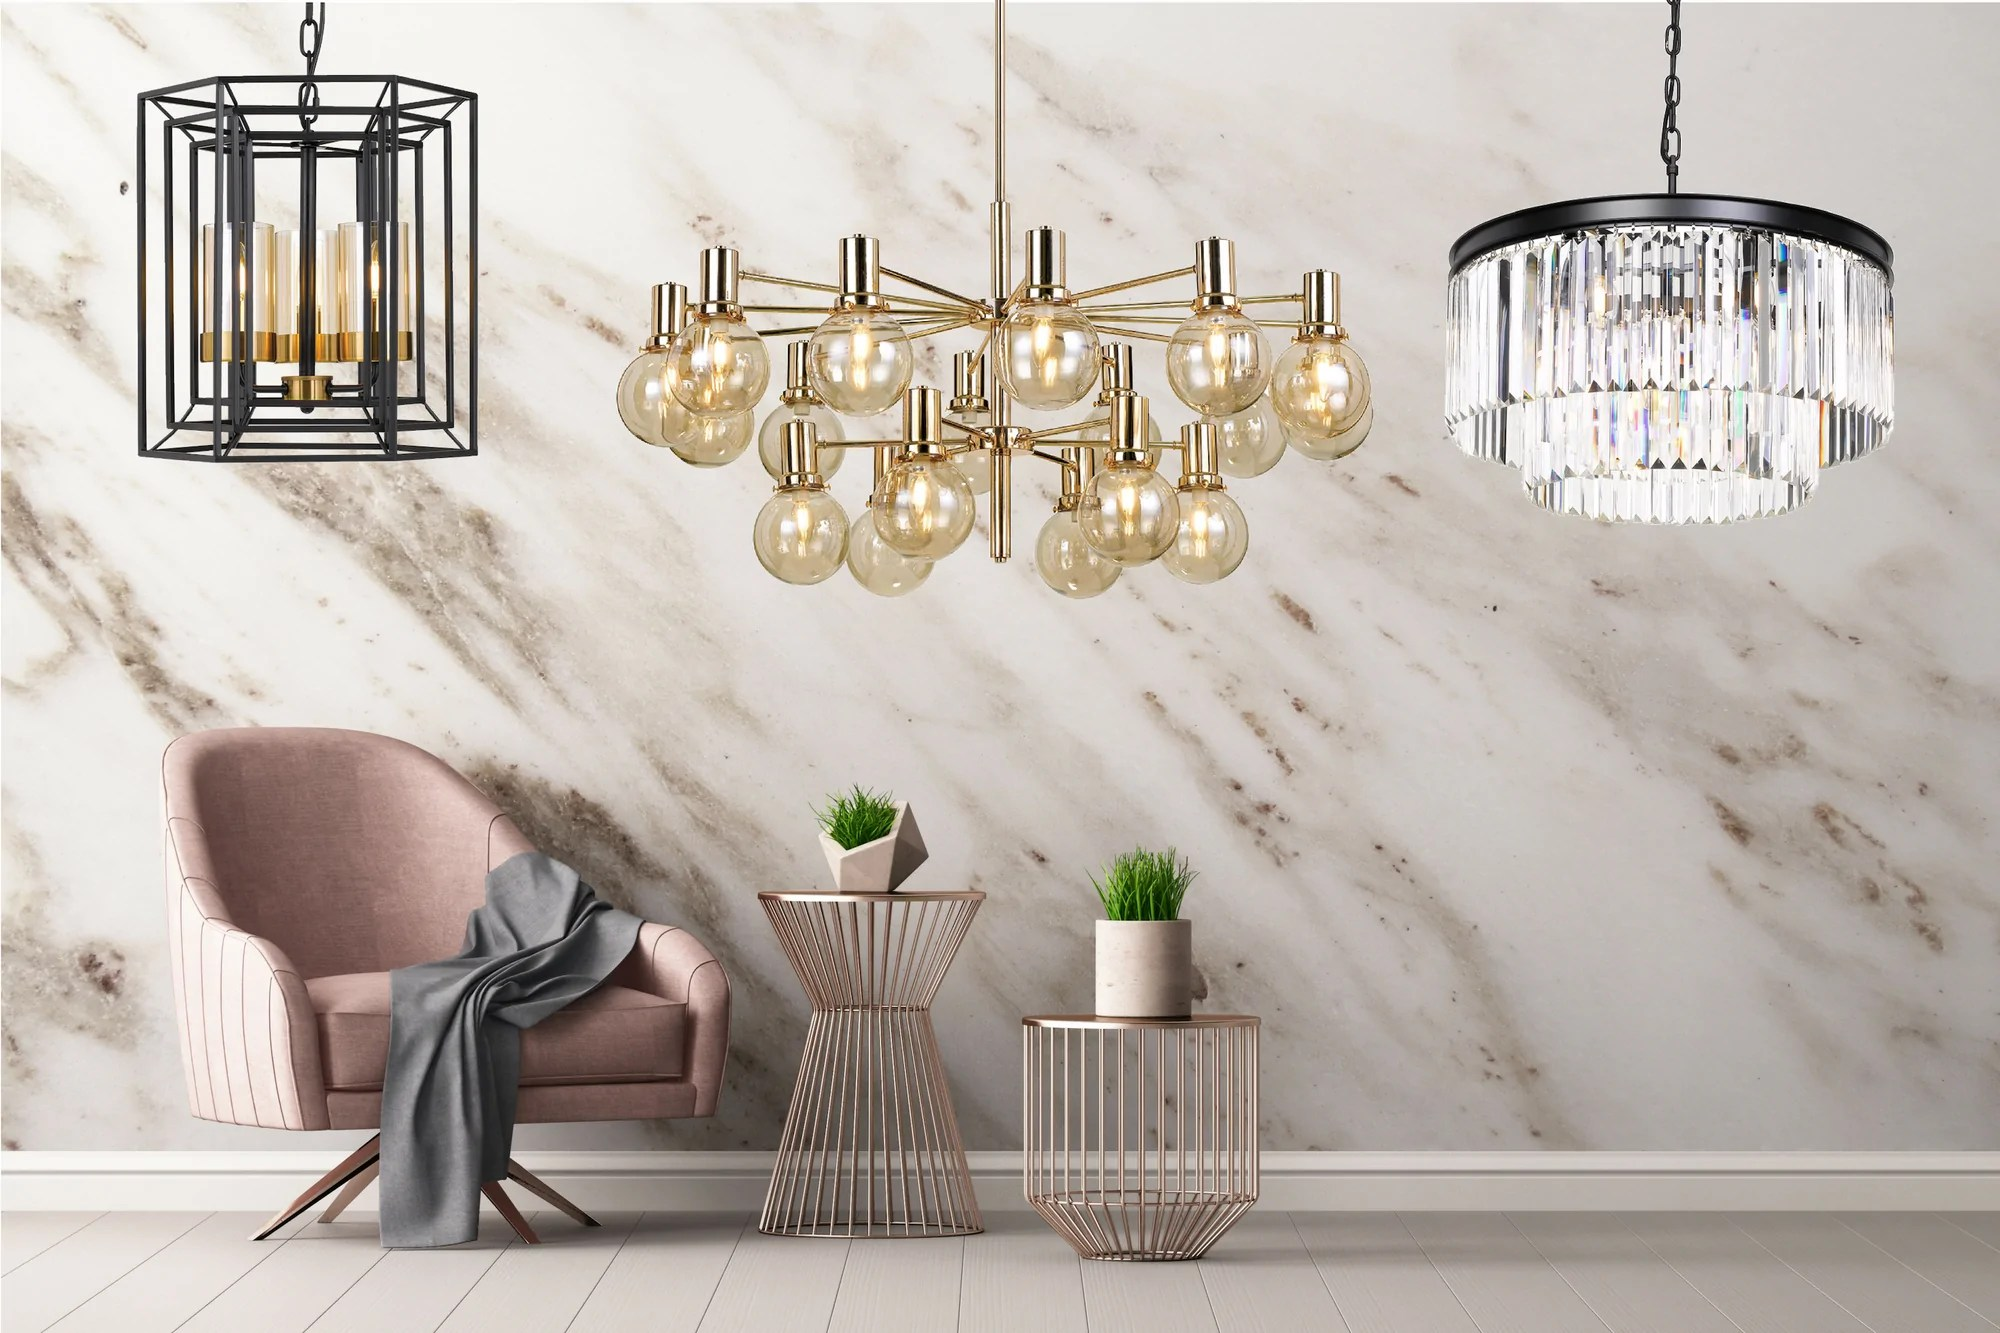 Lighting Shops Brisbane Hollywood Interiors Beautiful Furniture Lighting And Homewares